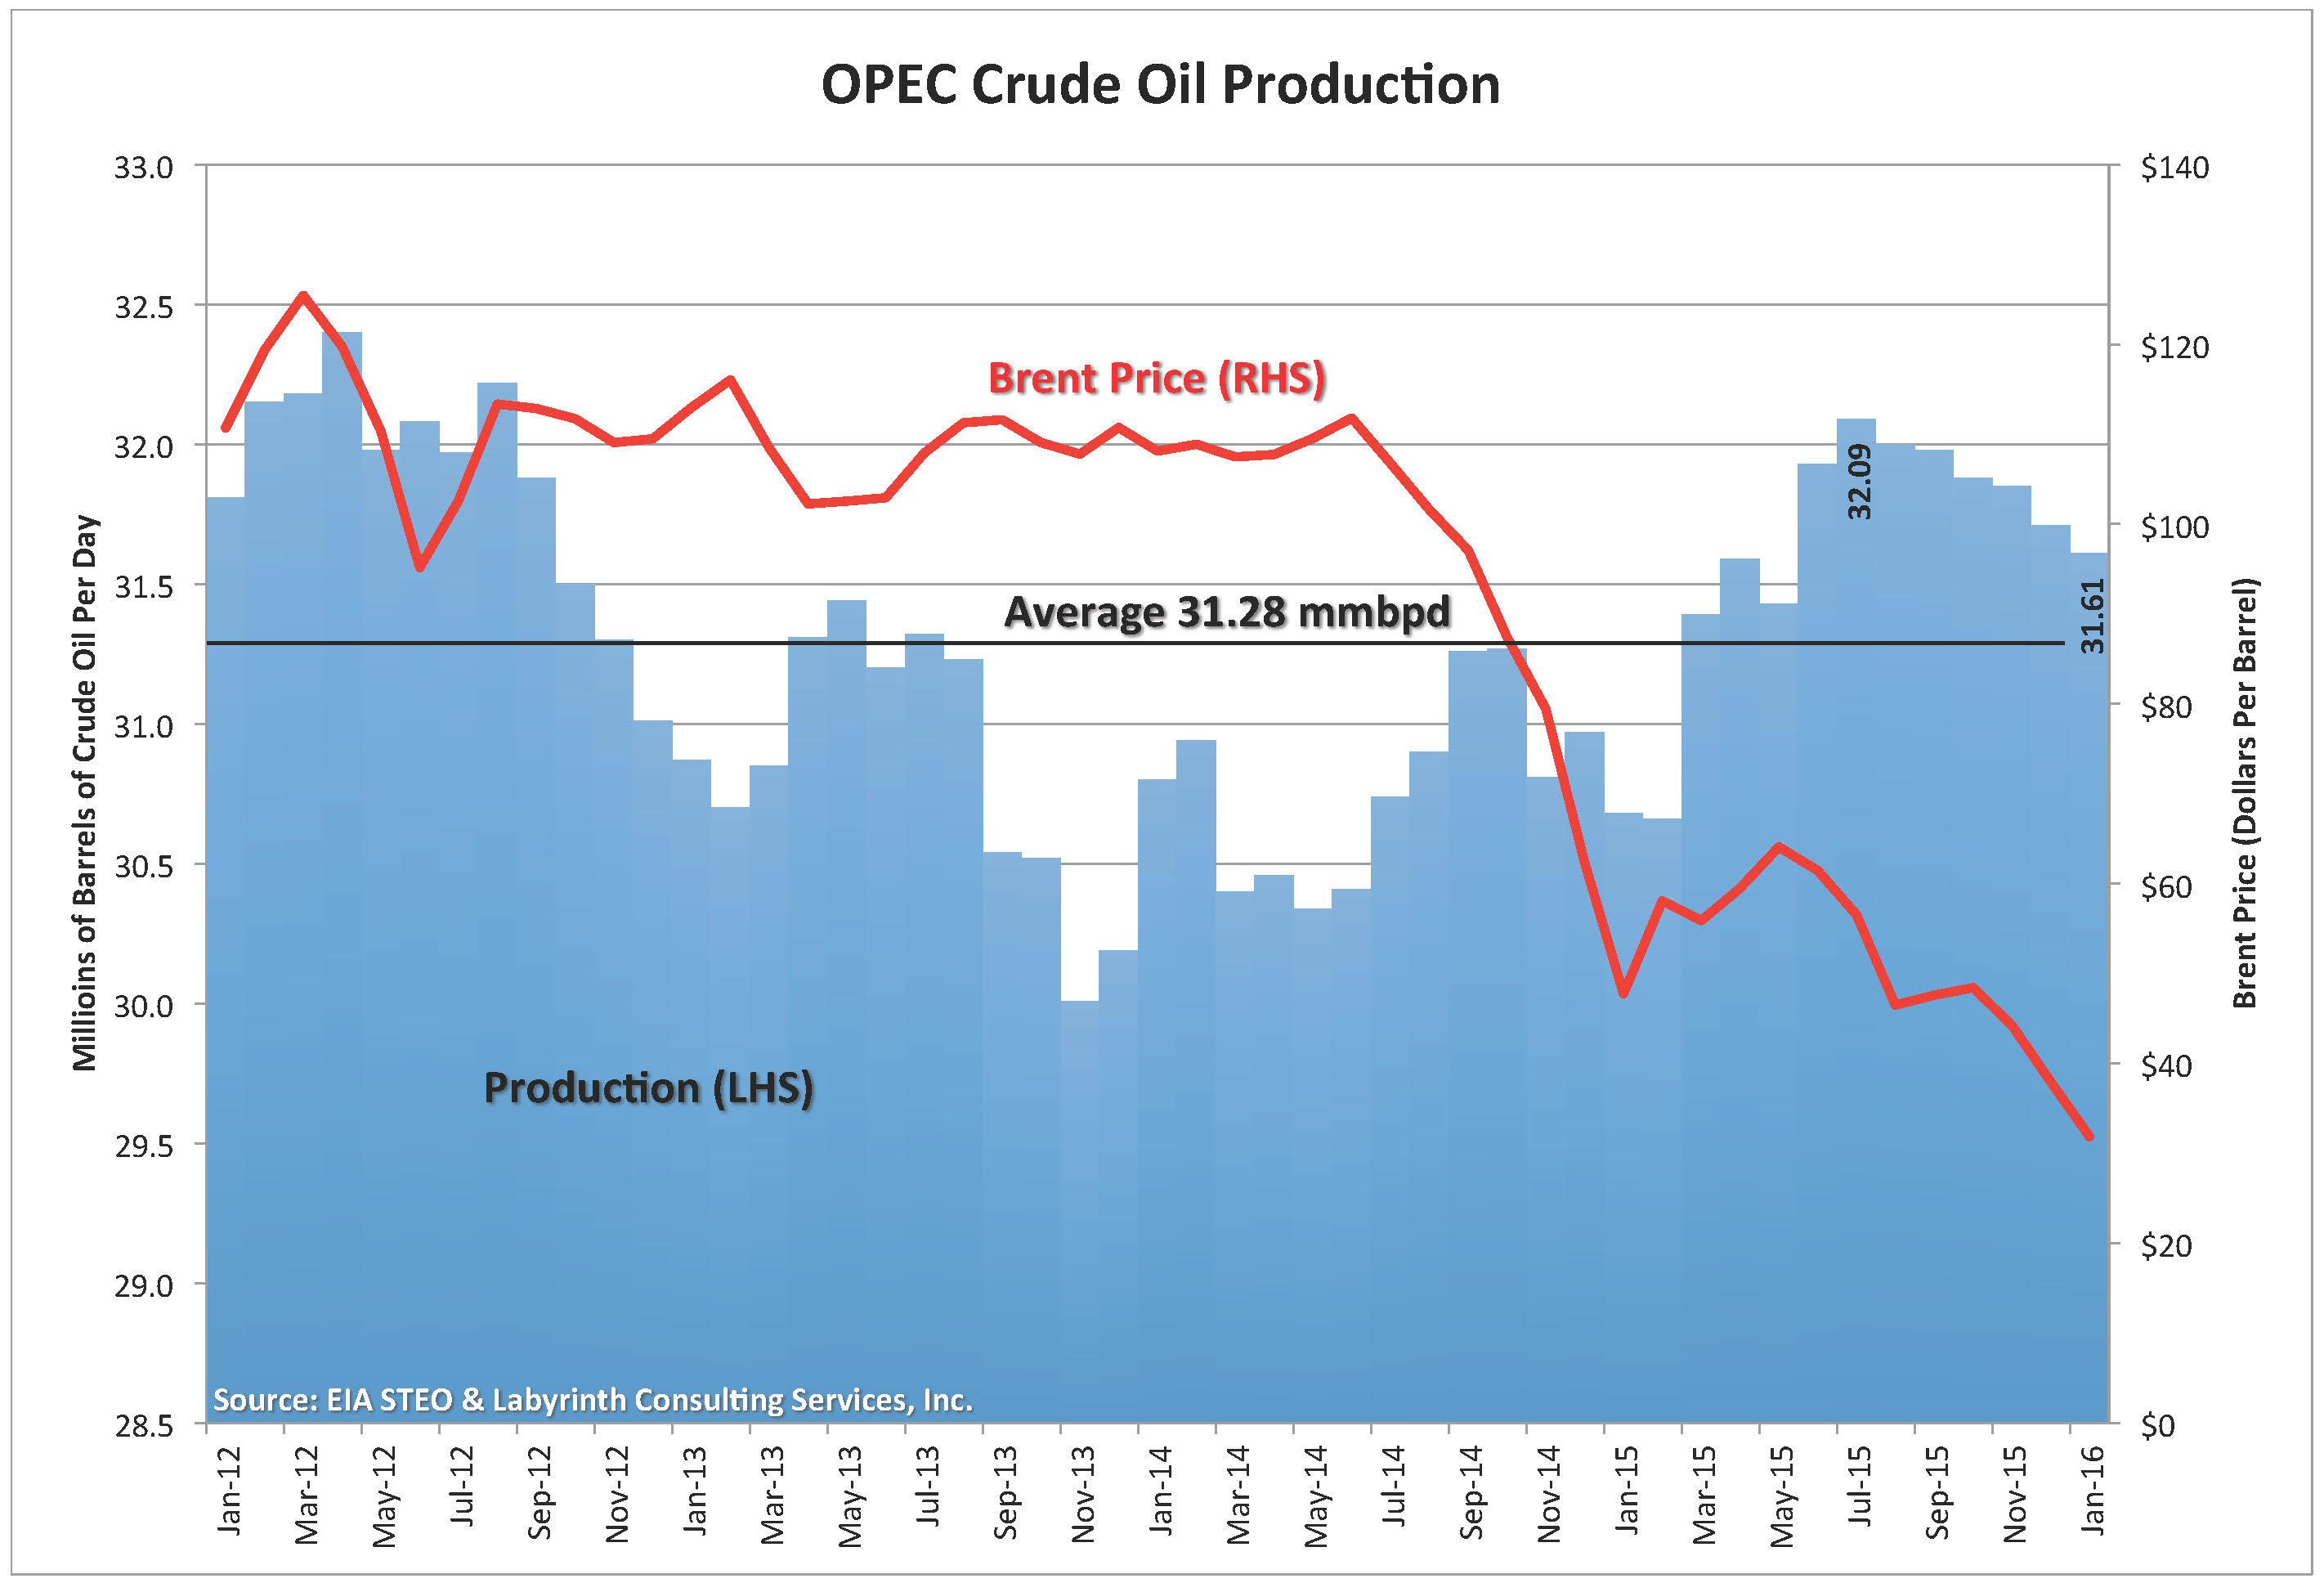 What do you think the future of the relationship between the US and OPEC will be?